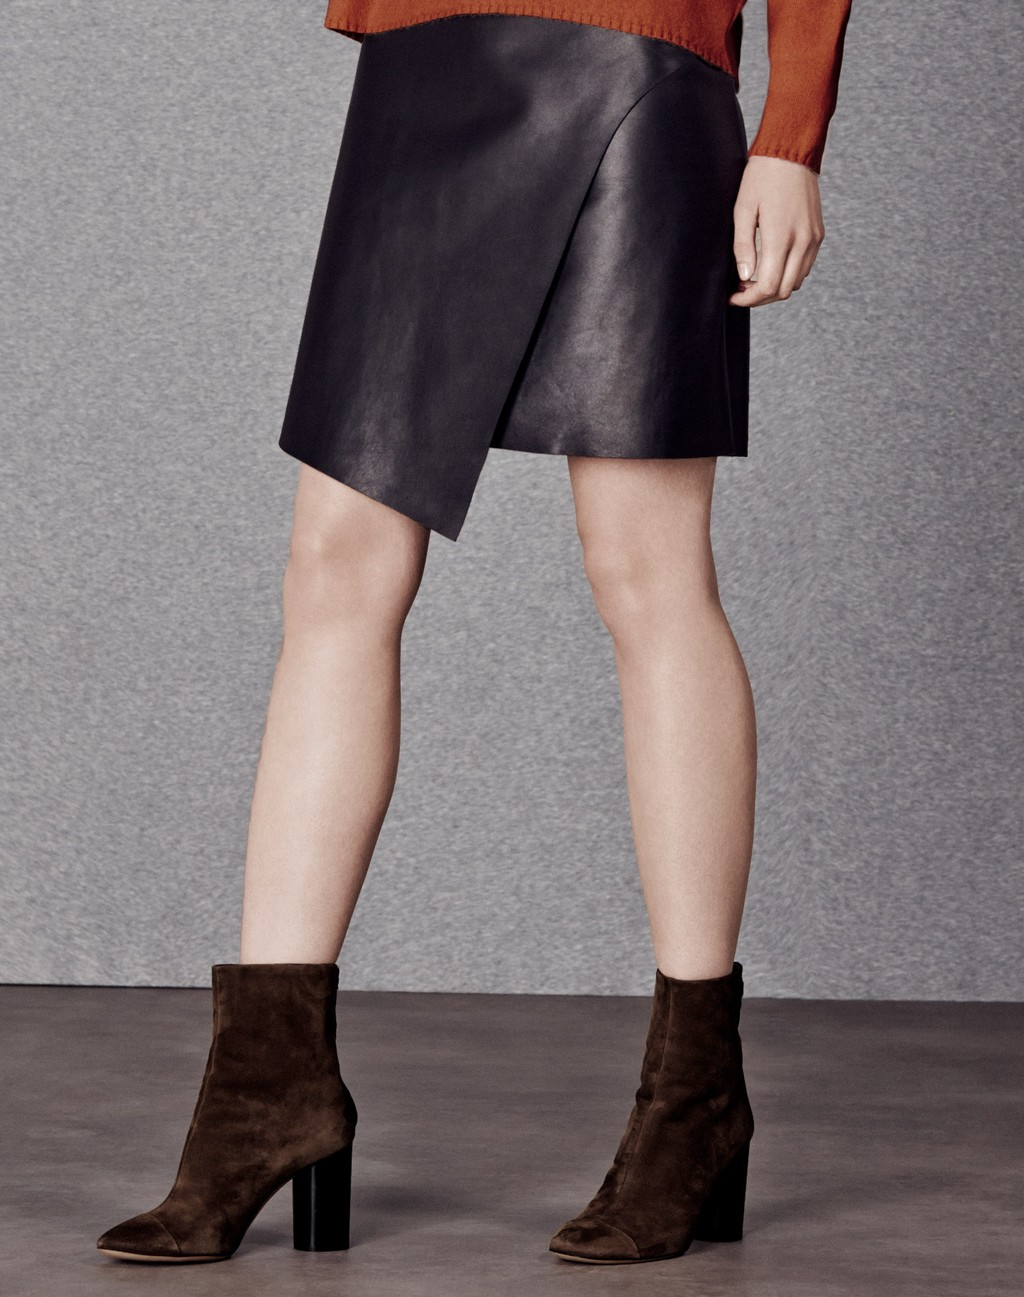 Asymmetric Leather Skirt Black - pattern: plain; style: wrap/faux wrap; fit: tailored/fitted; waist: mid/regular rise; predominant colour: black; occasions: casual, evening, creative work; length: just above the knee; fibres: leather - 100%; texture group: leather; pattern type: fabric; season: a/w 2015